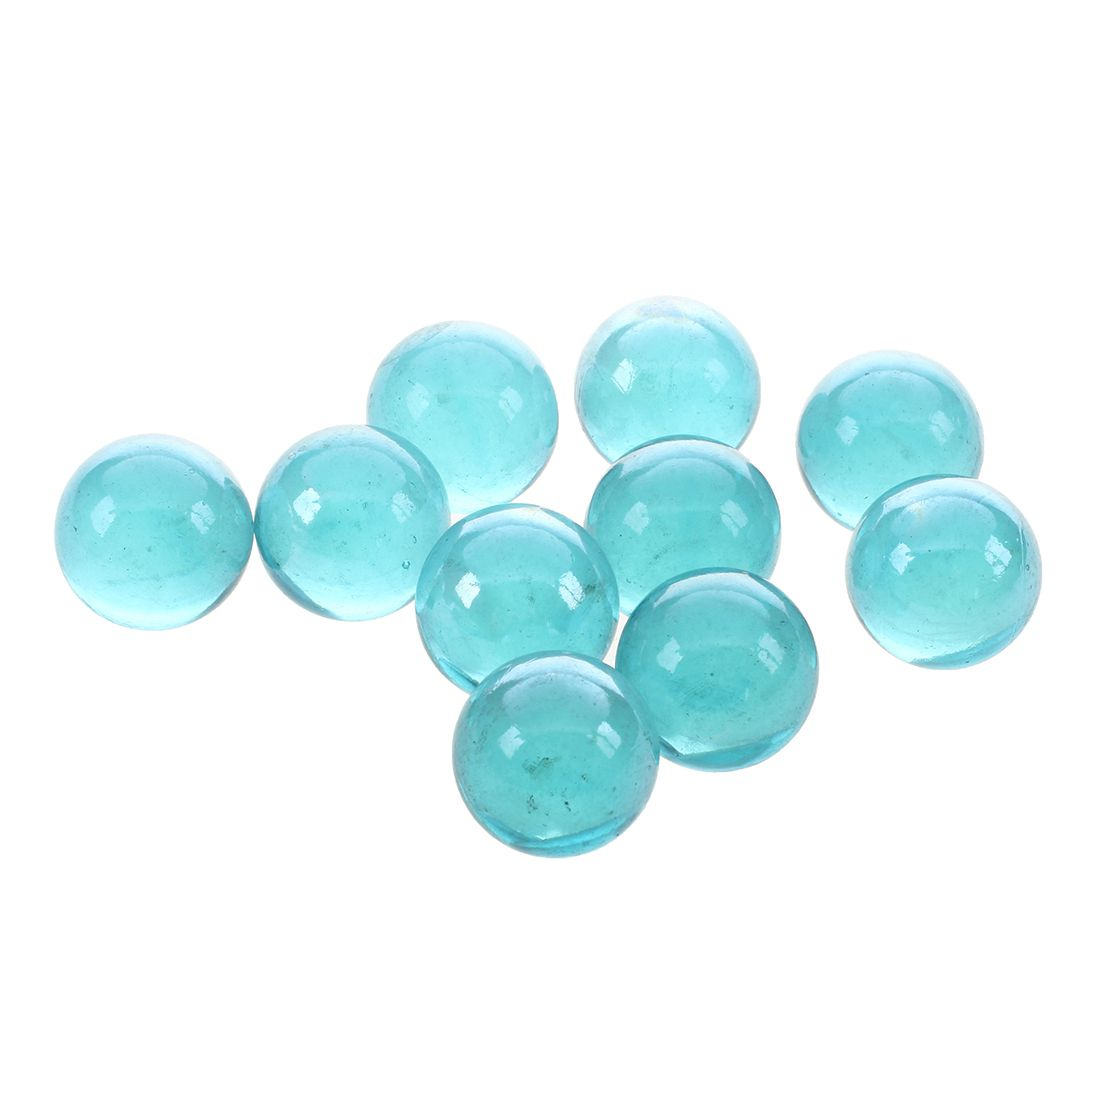 10 Pcs Marbles 16mm Glass Marbles Knicker Glass Balls Decoration Color Nuggets Toy